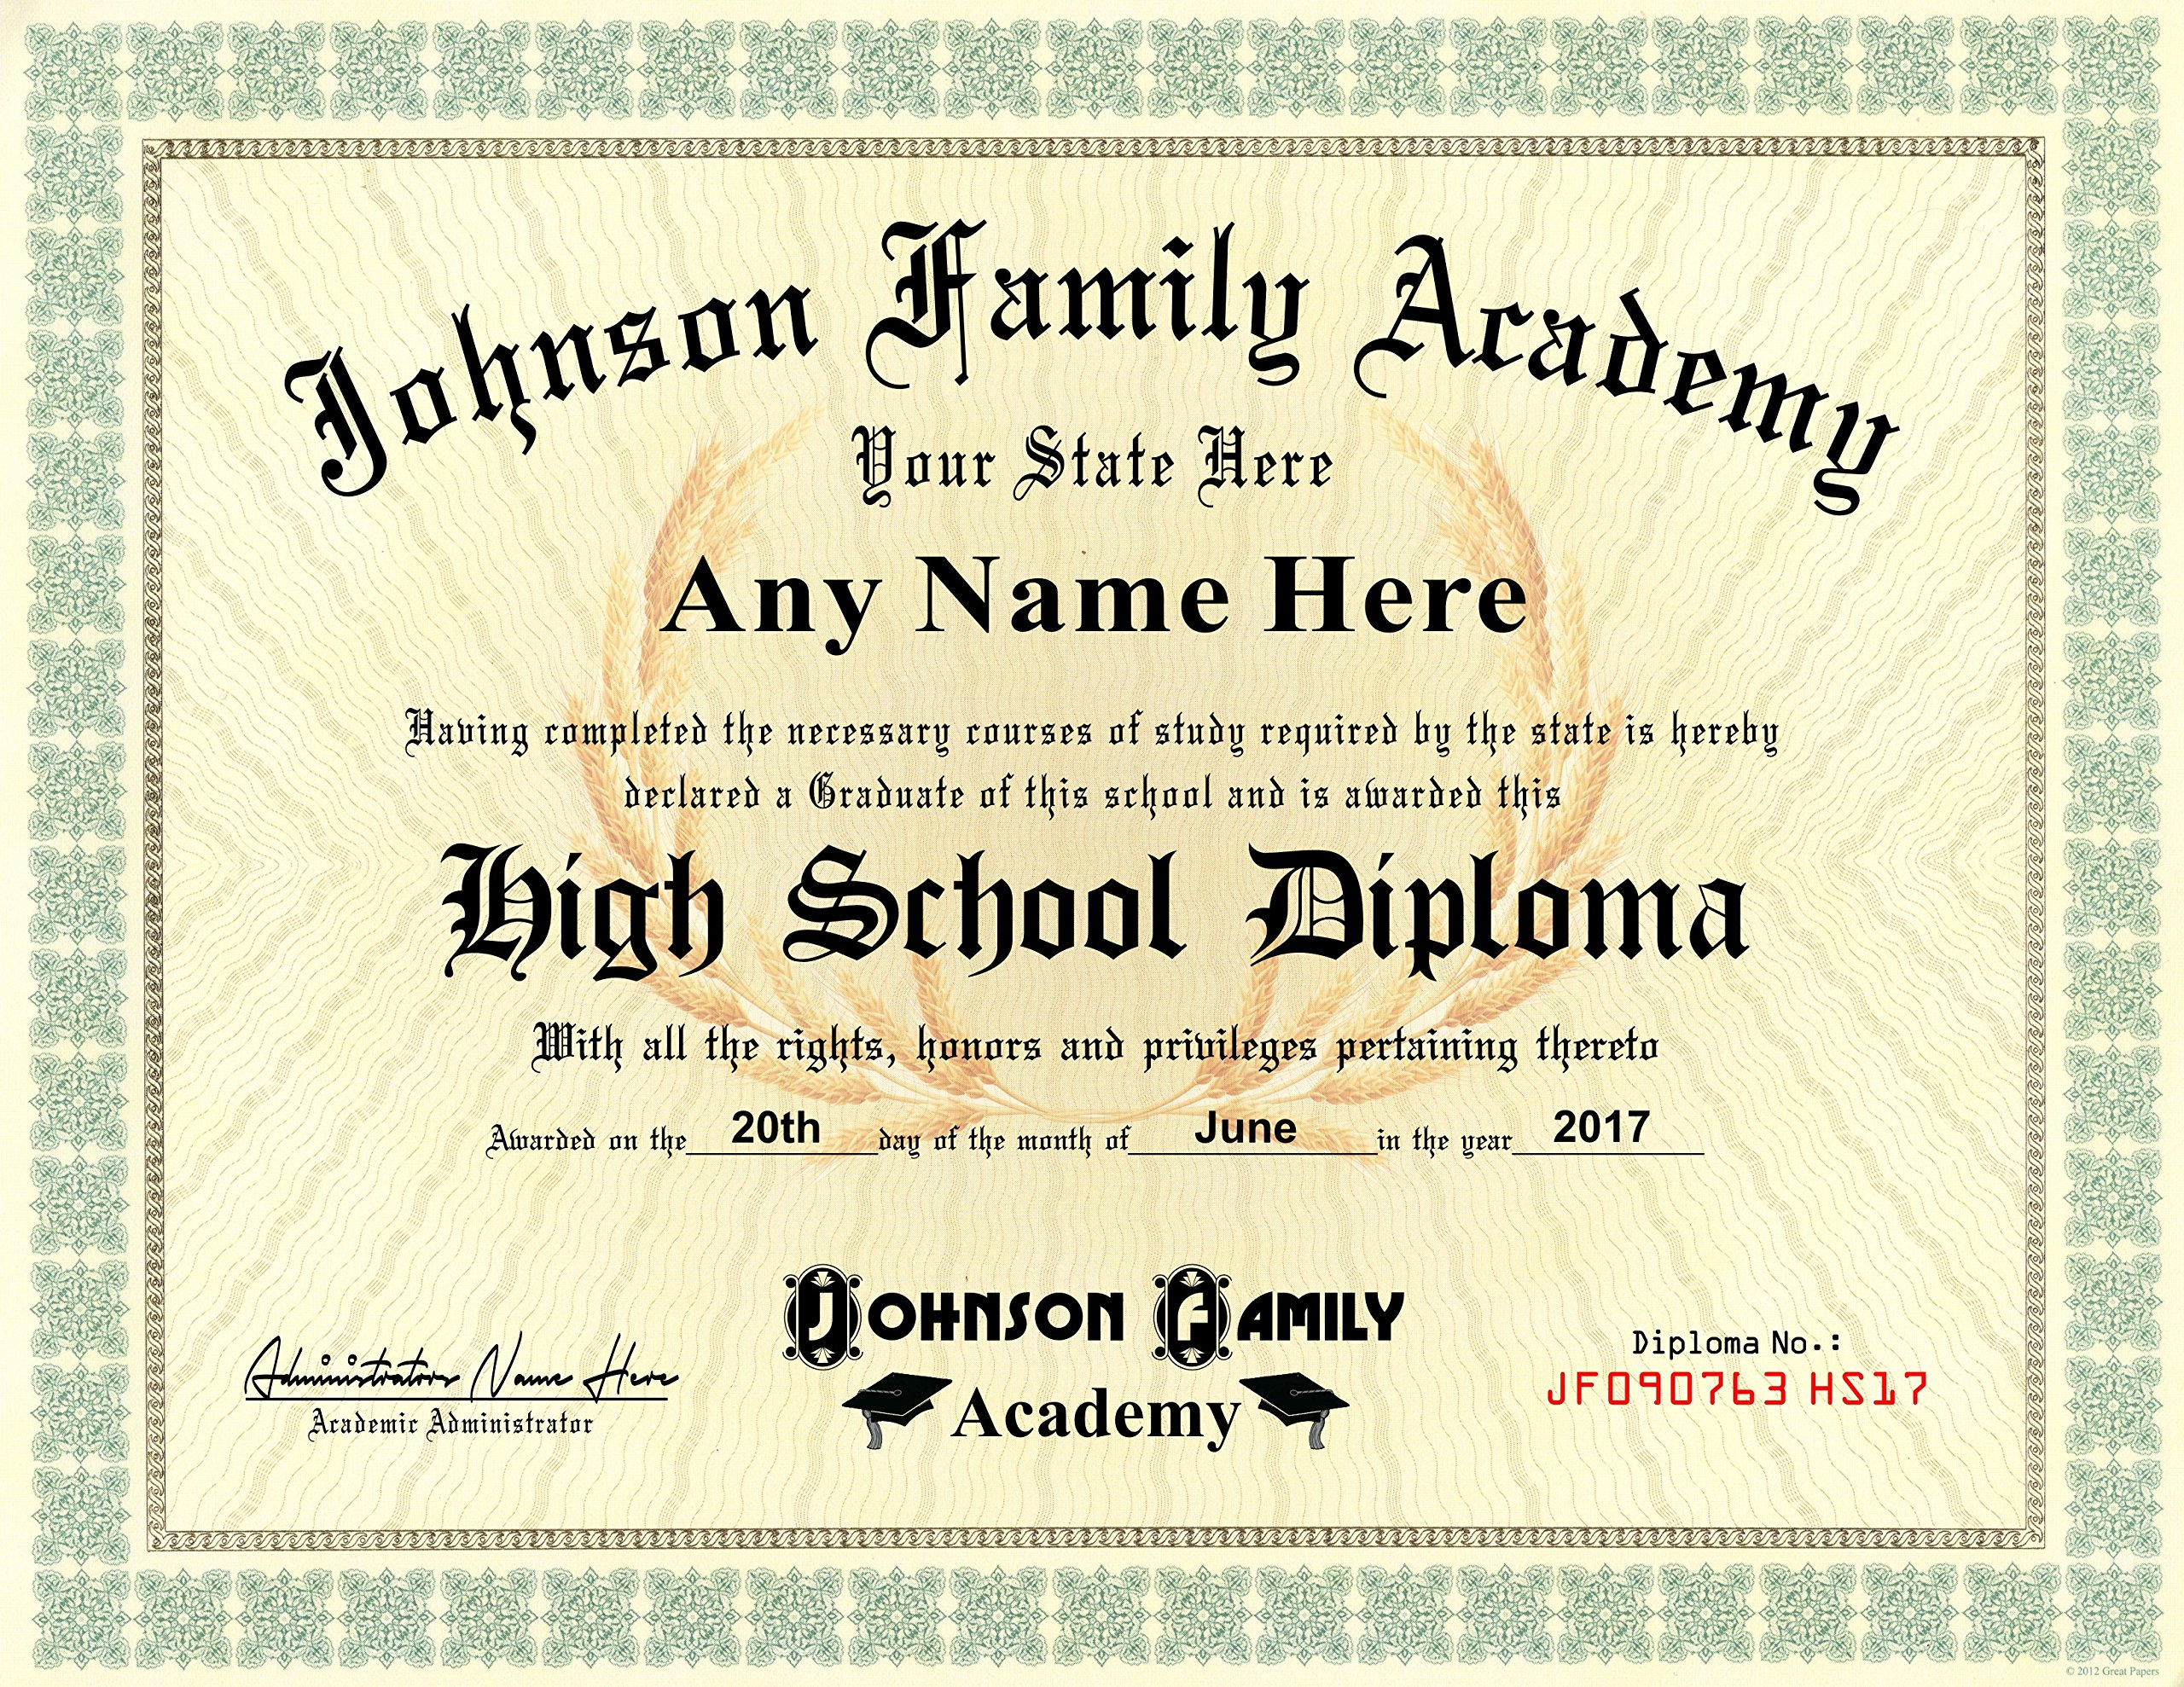 Home School Student High School Diploma - Personalized with Your Info - Premium Qaulity - Comes with Certificate Folder